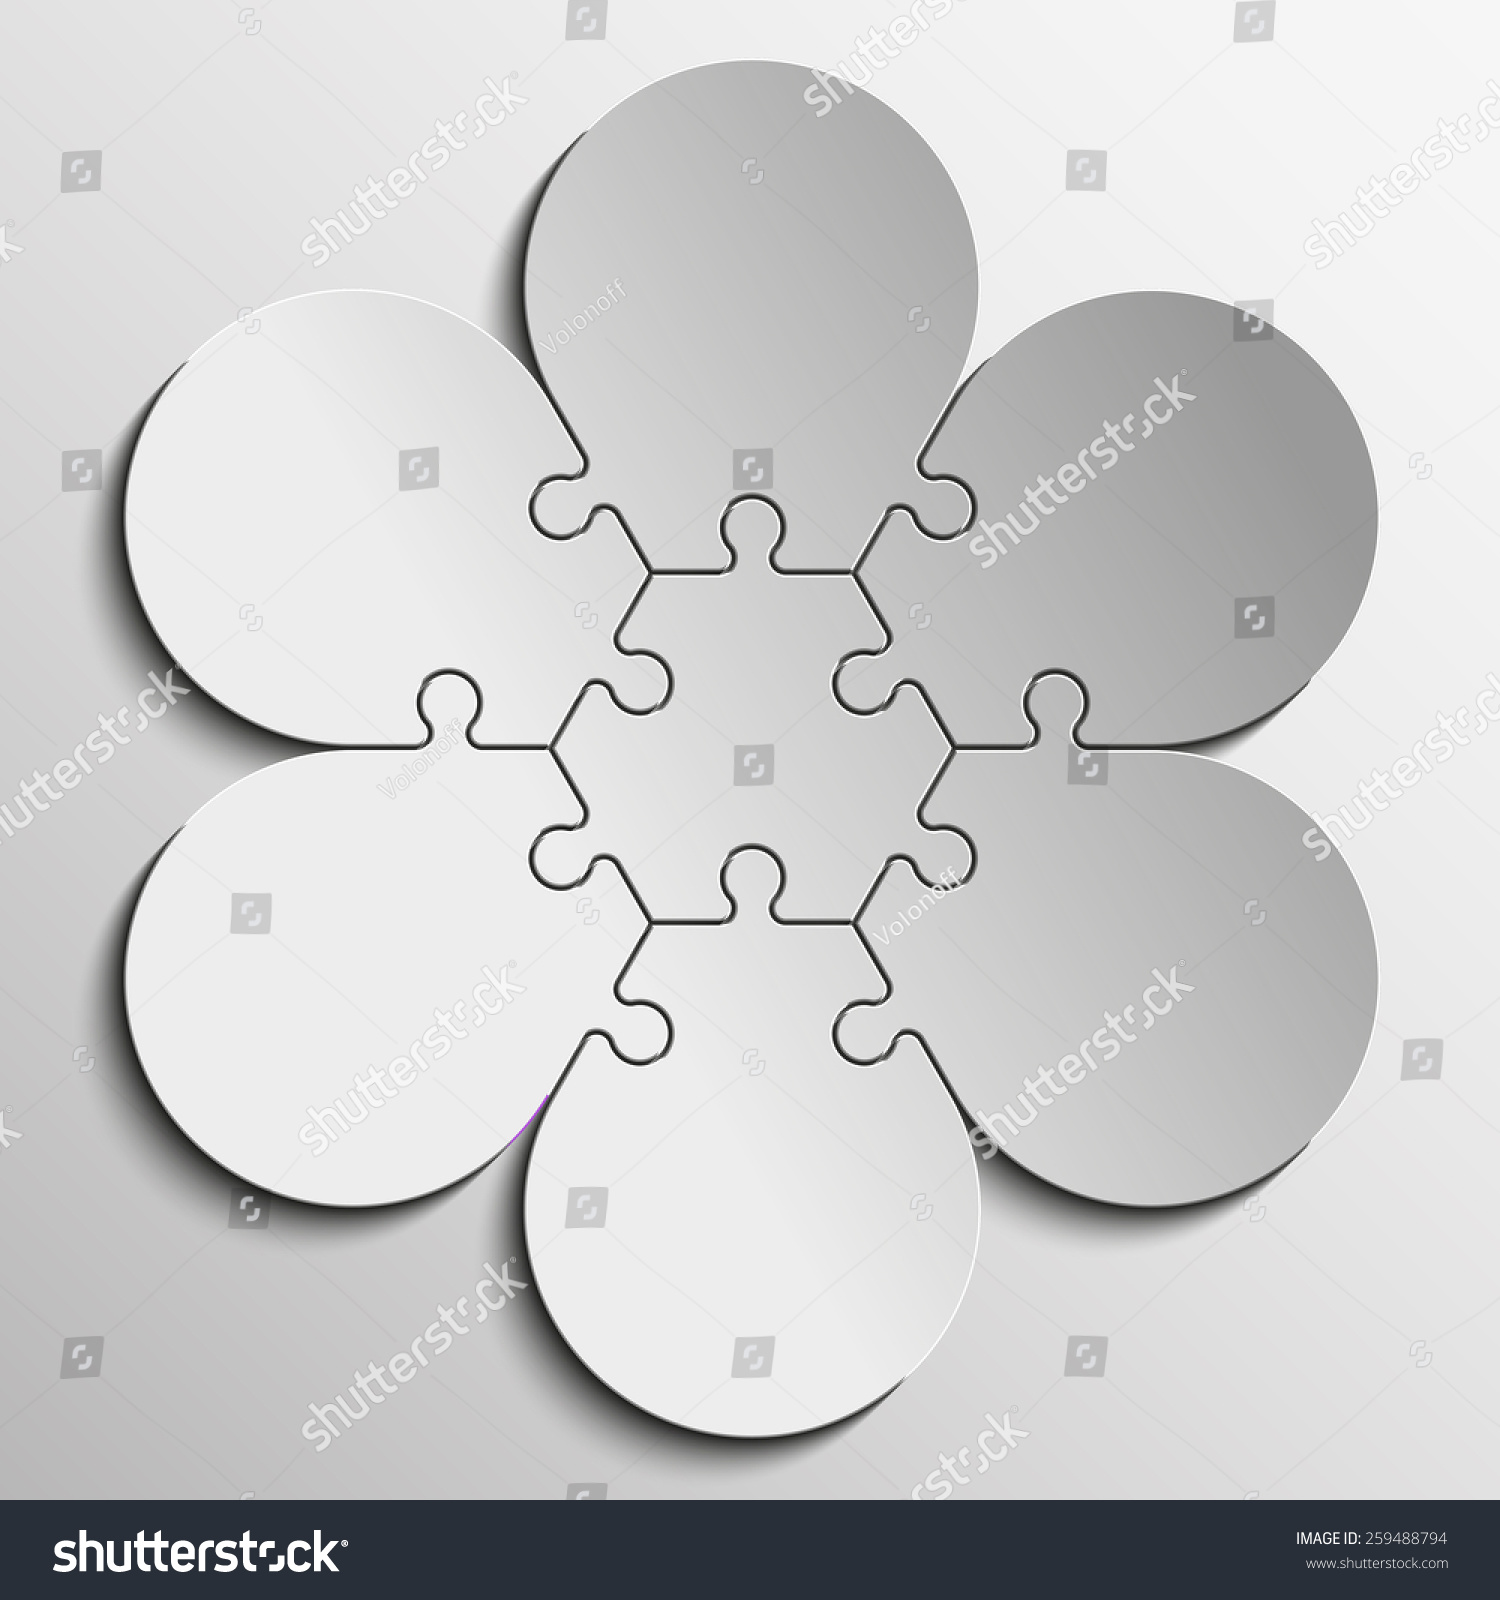 Sixpointed Flower Piece Flat Puzzle Round Stock Illustration ...